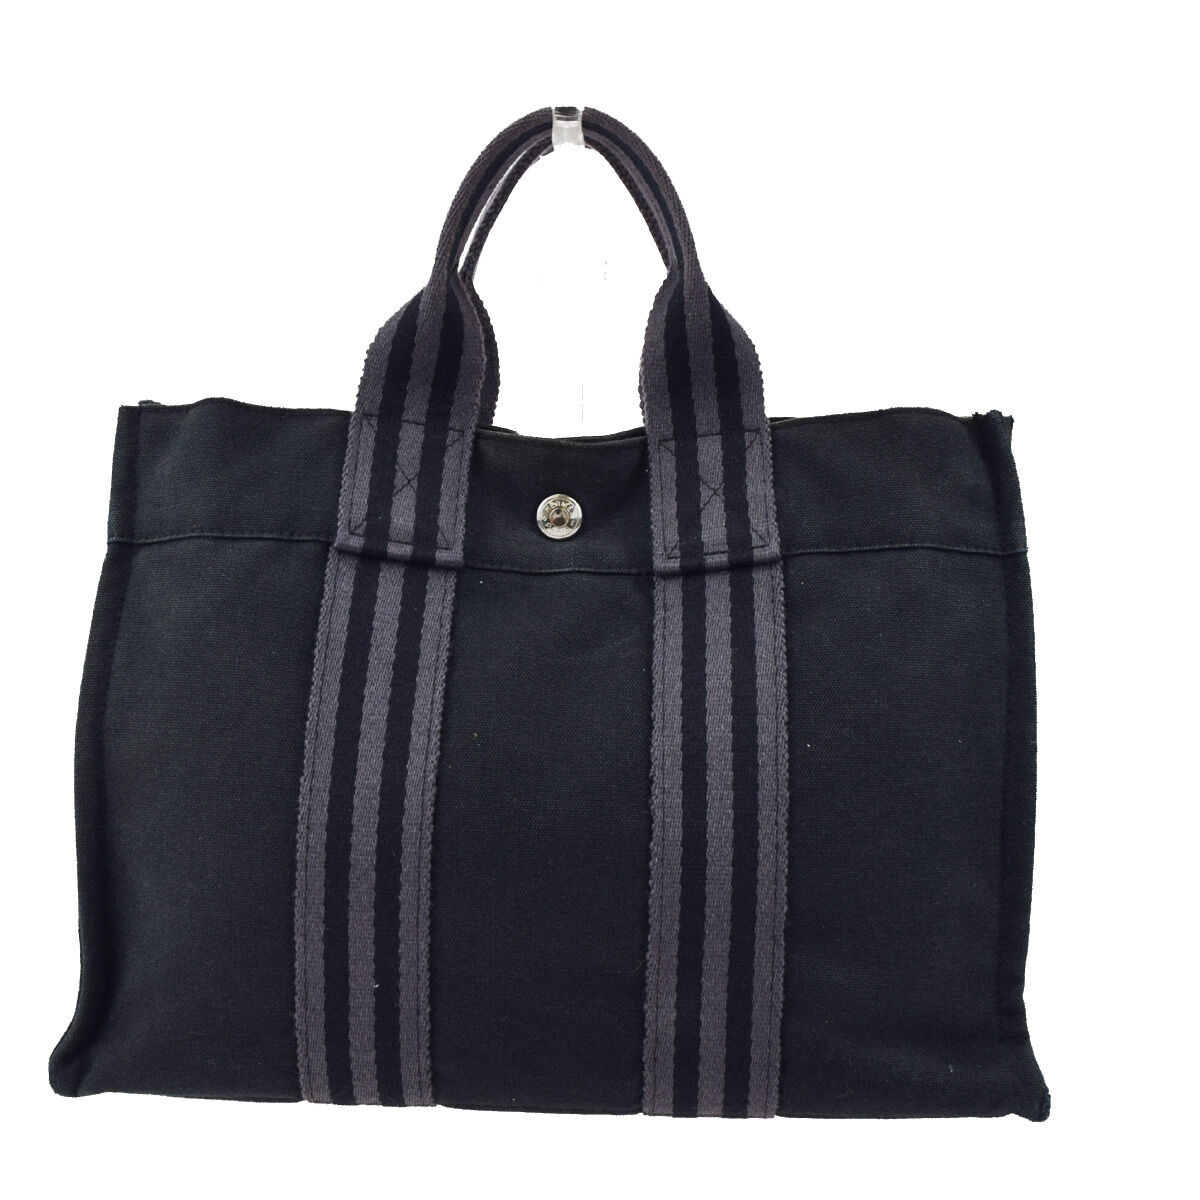 Authentic HERMES Logos Fourre Tout PM Hand Tote Bag Canvas Black France 03W645